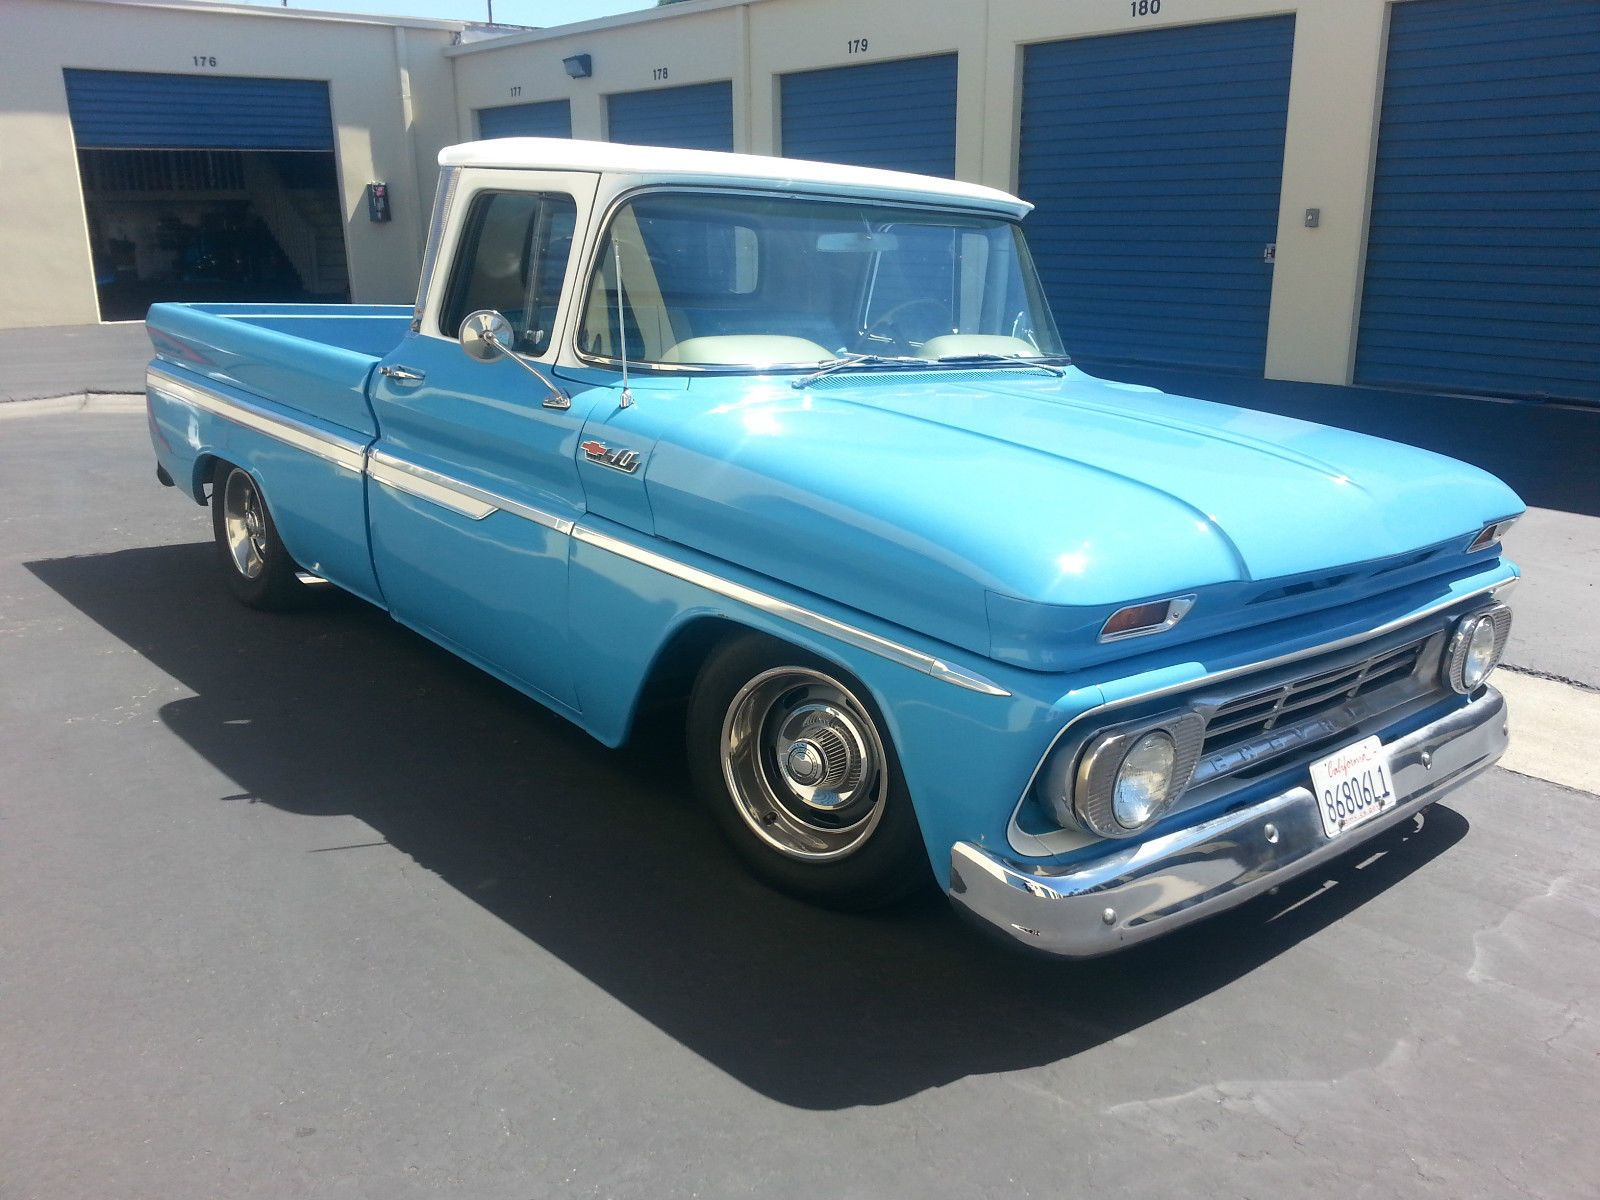 196066 Chevy C10 Trucks & Suburbans image by Rich